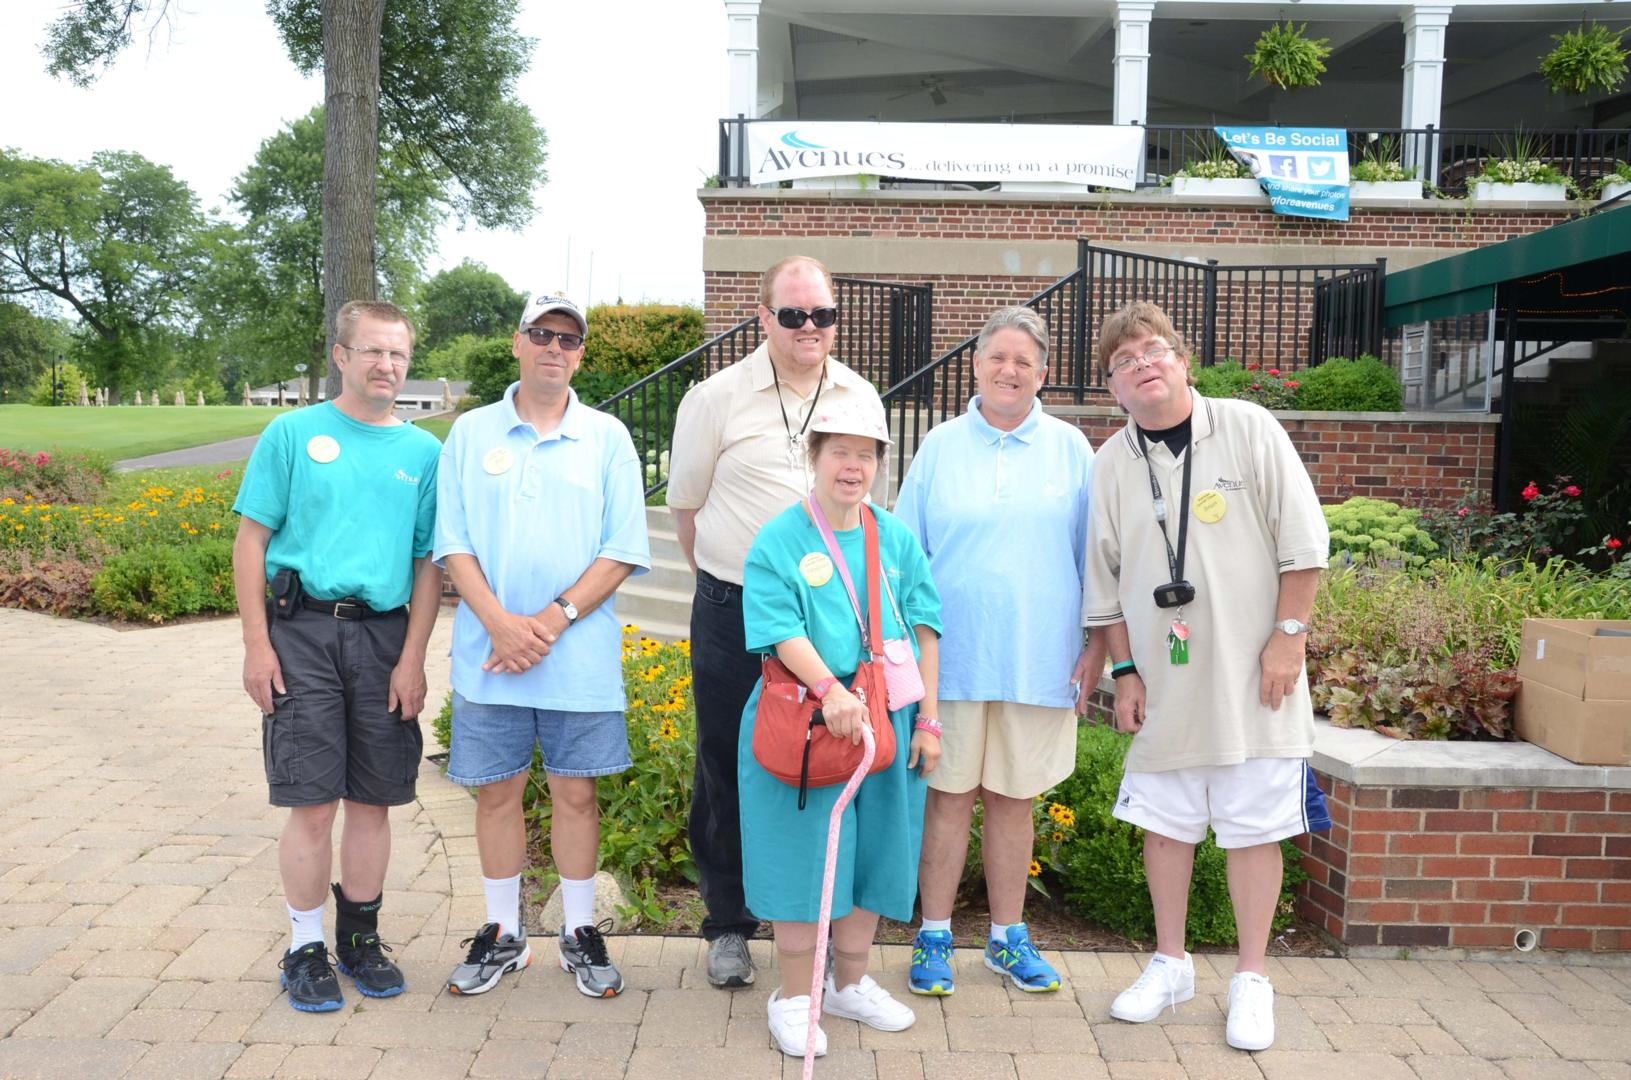 27th Annual Avenues/Gorman Golf and Tennis Classic